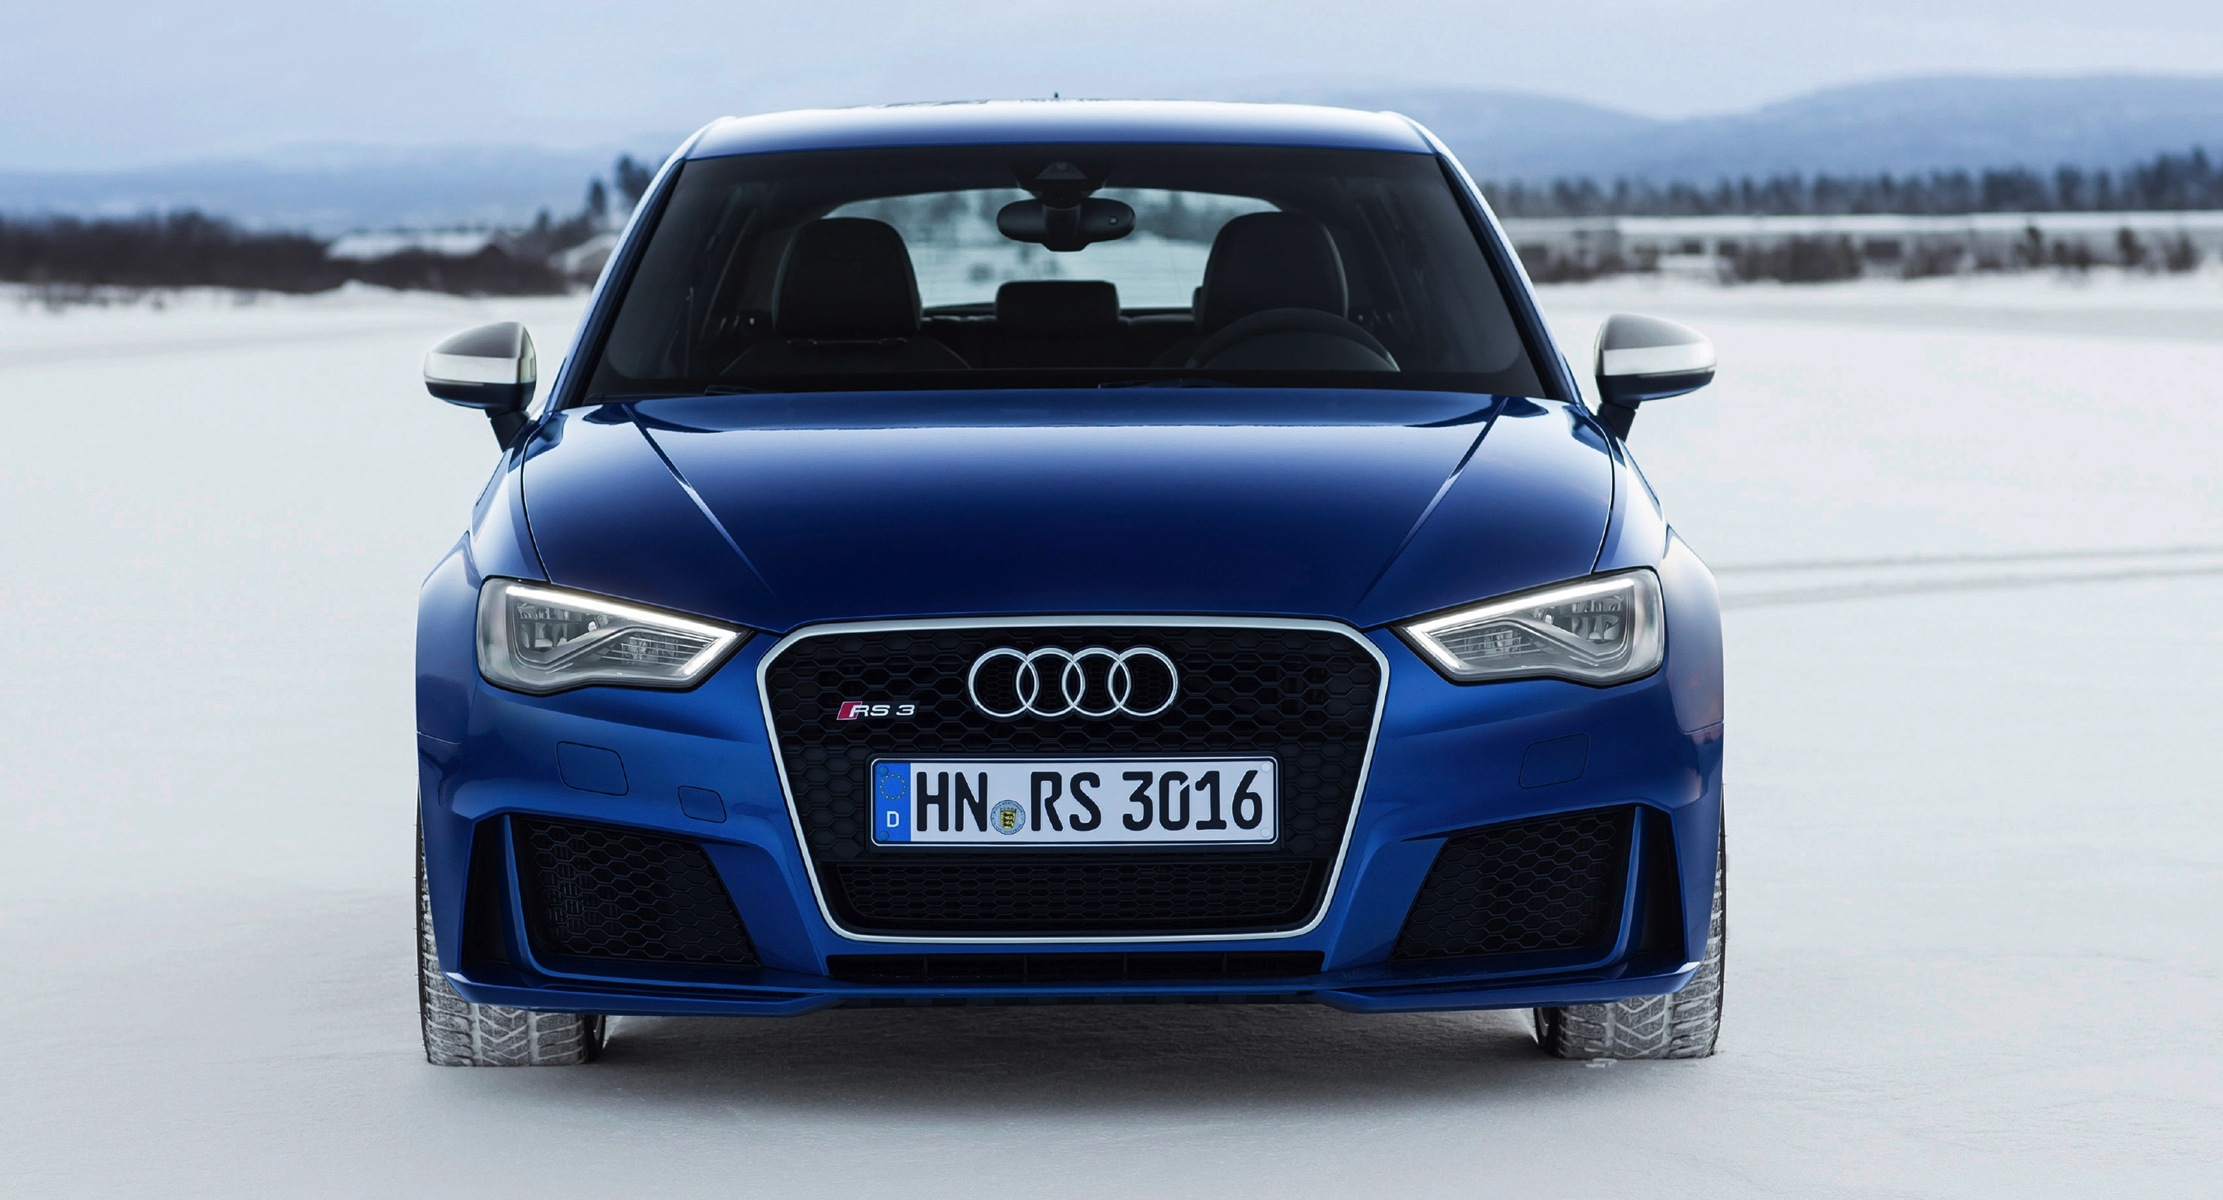 review s in tronic sportback tdi business term side line ultra audi colour is leeds long the blue